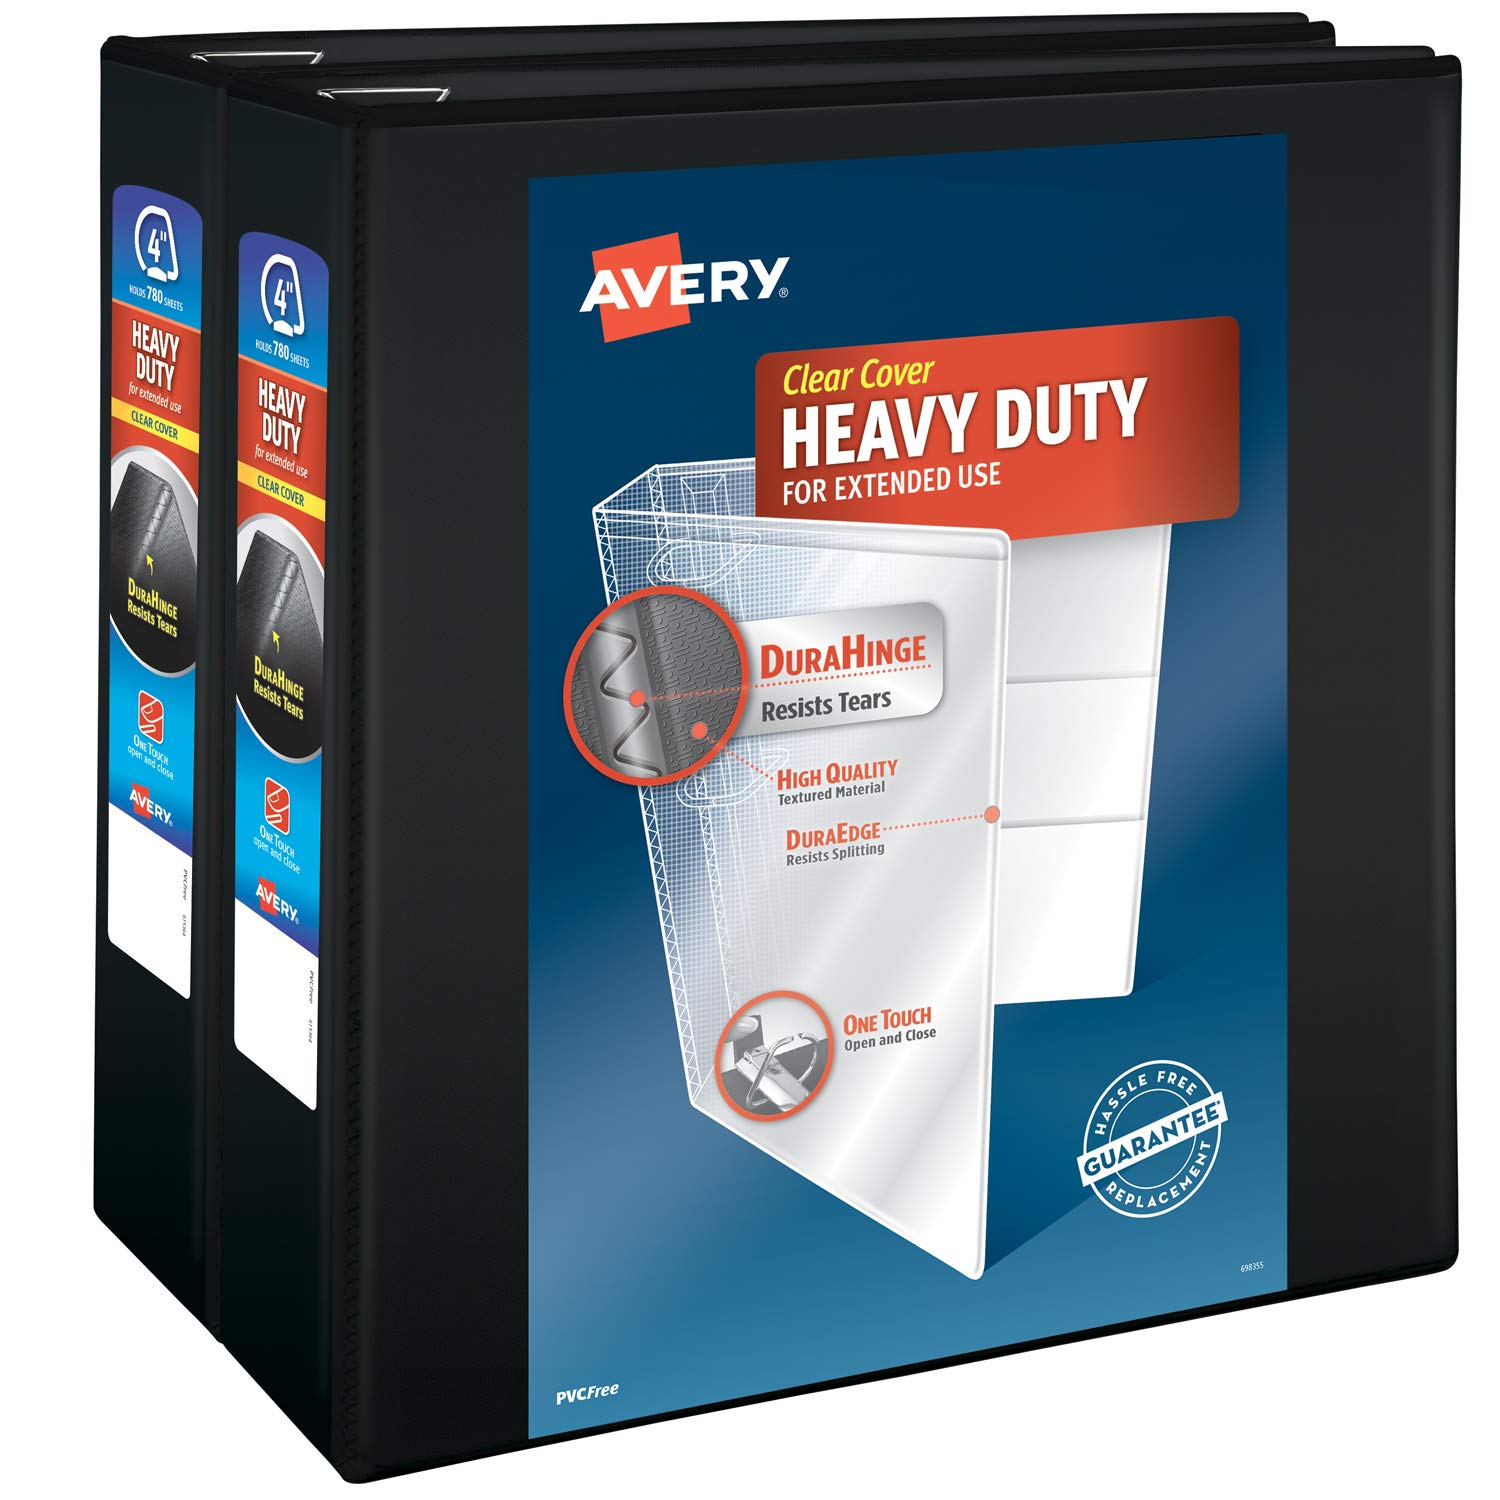 Avery 4'' Heavy Duty View 3 Ring Binder, One Touch Slant Ring, Holds 8.5'' x 11'' Paper, 2 Black Binders (79874)